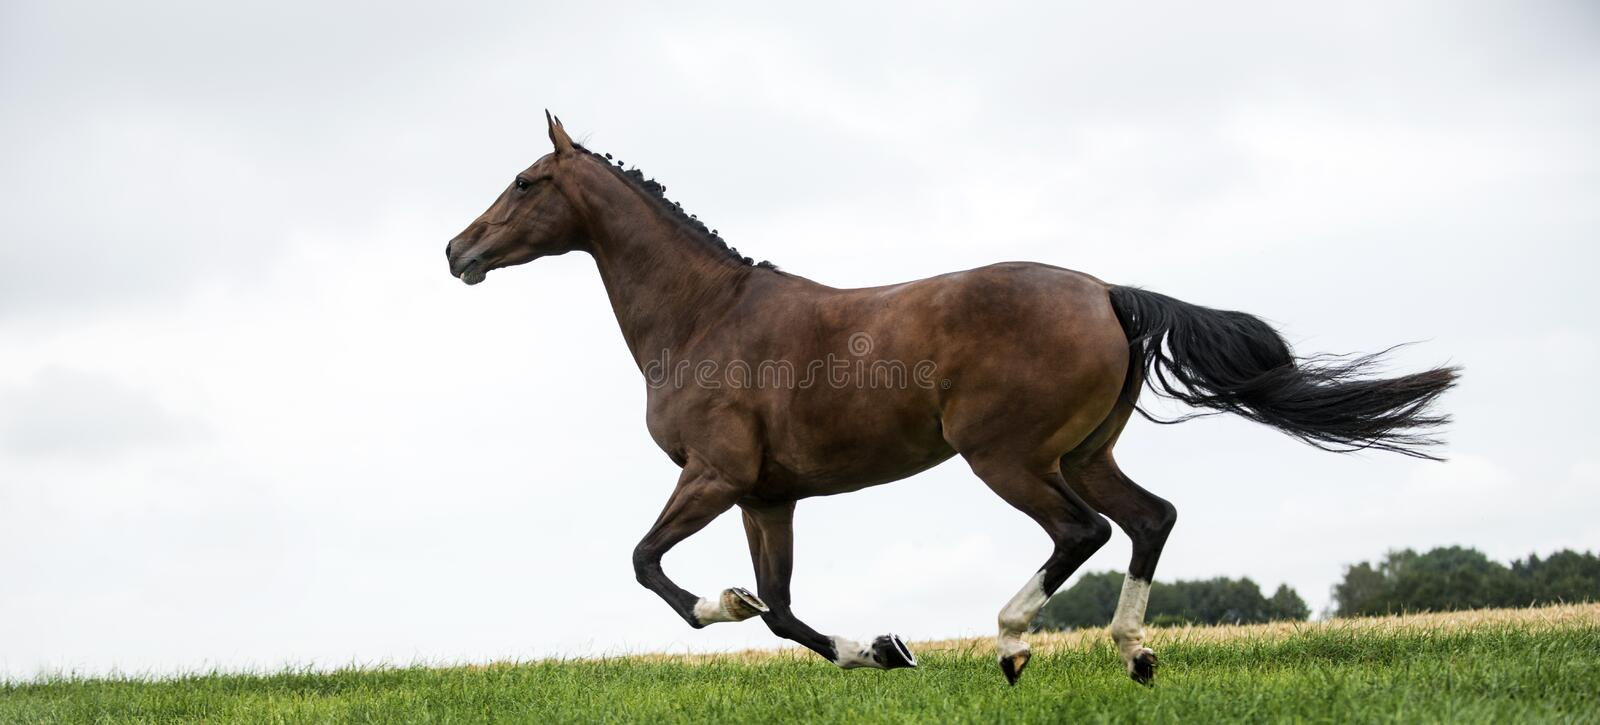 Horses galloping in a field royalty free stock image